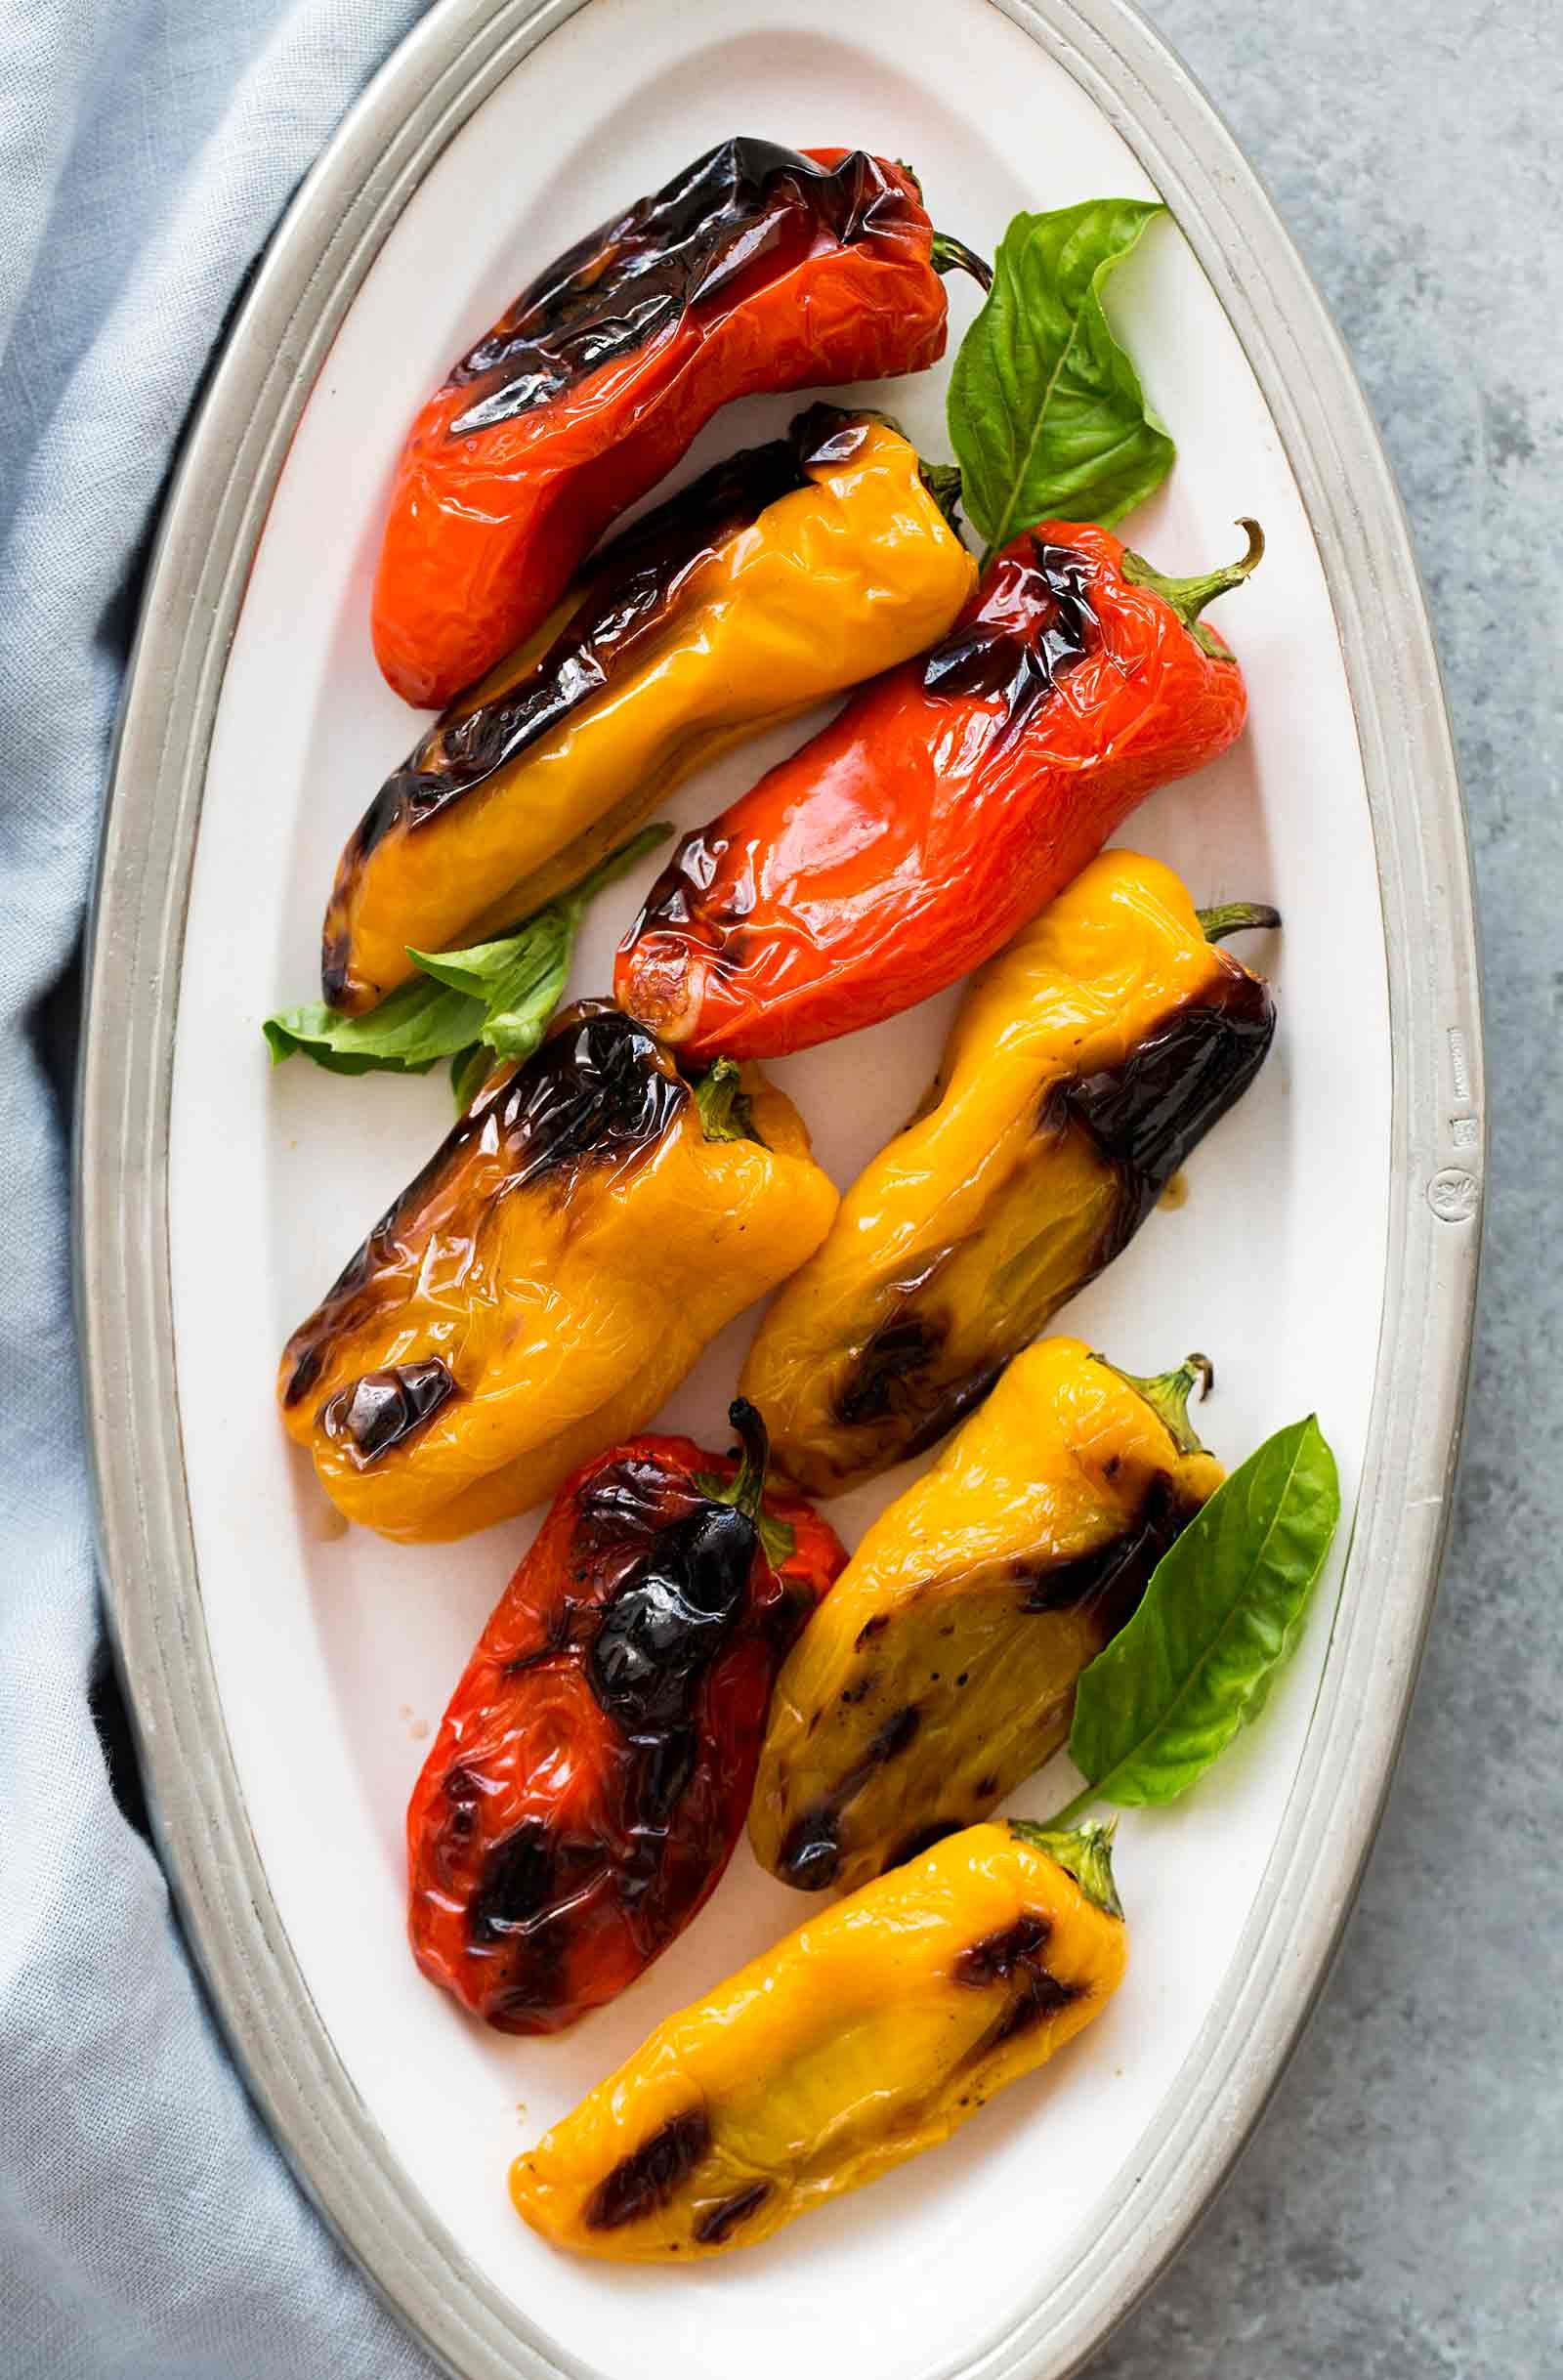 Mozzarella Stuffed Sweet Mini Peppers Recipe Simplyrecipes Com Recipe Stuffed Peppers Mini Peppers Recipes Stuffed Mini Peppers